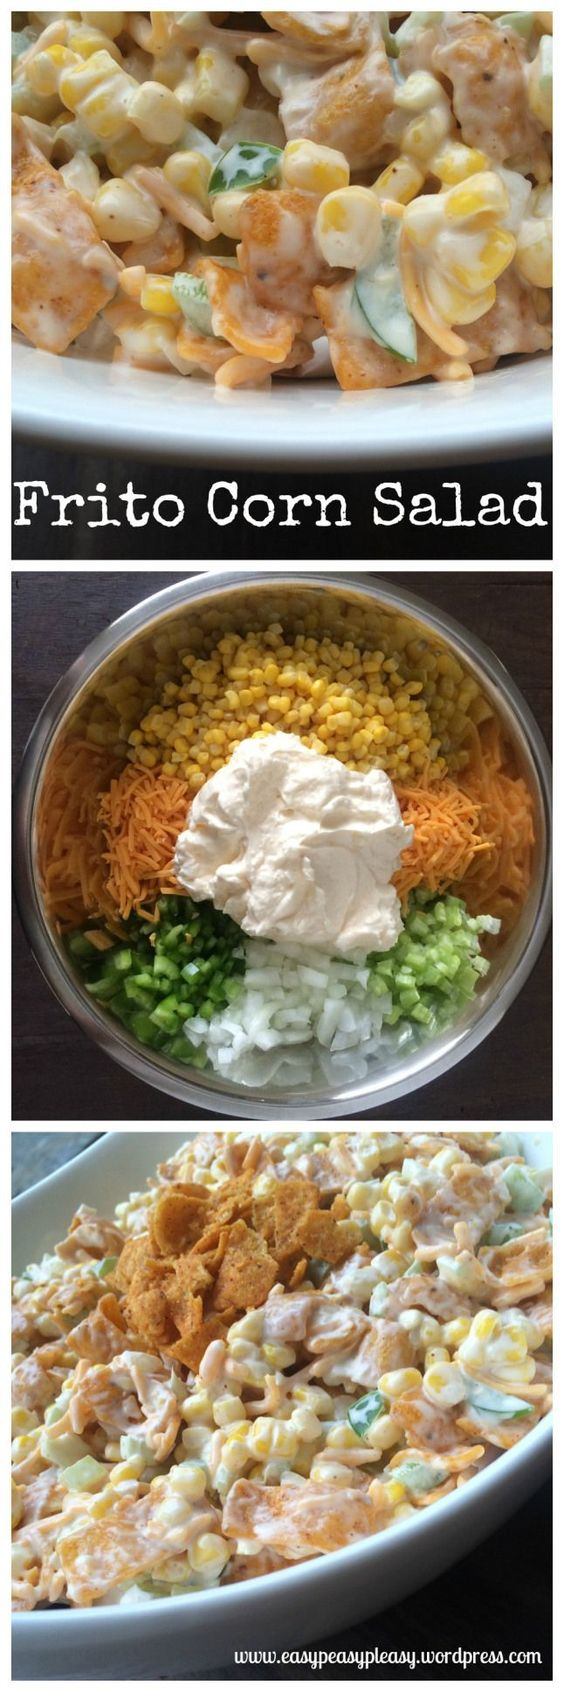 Frito Corn Salad is great for potlucks, BBQ, and parties.